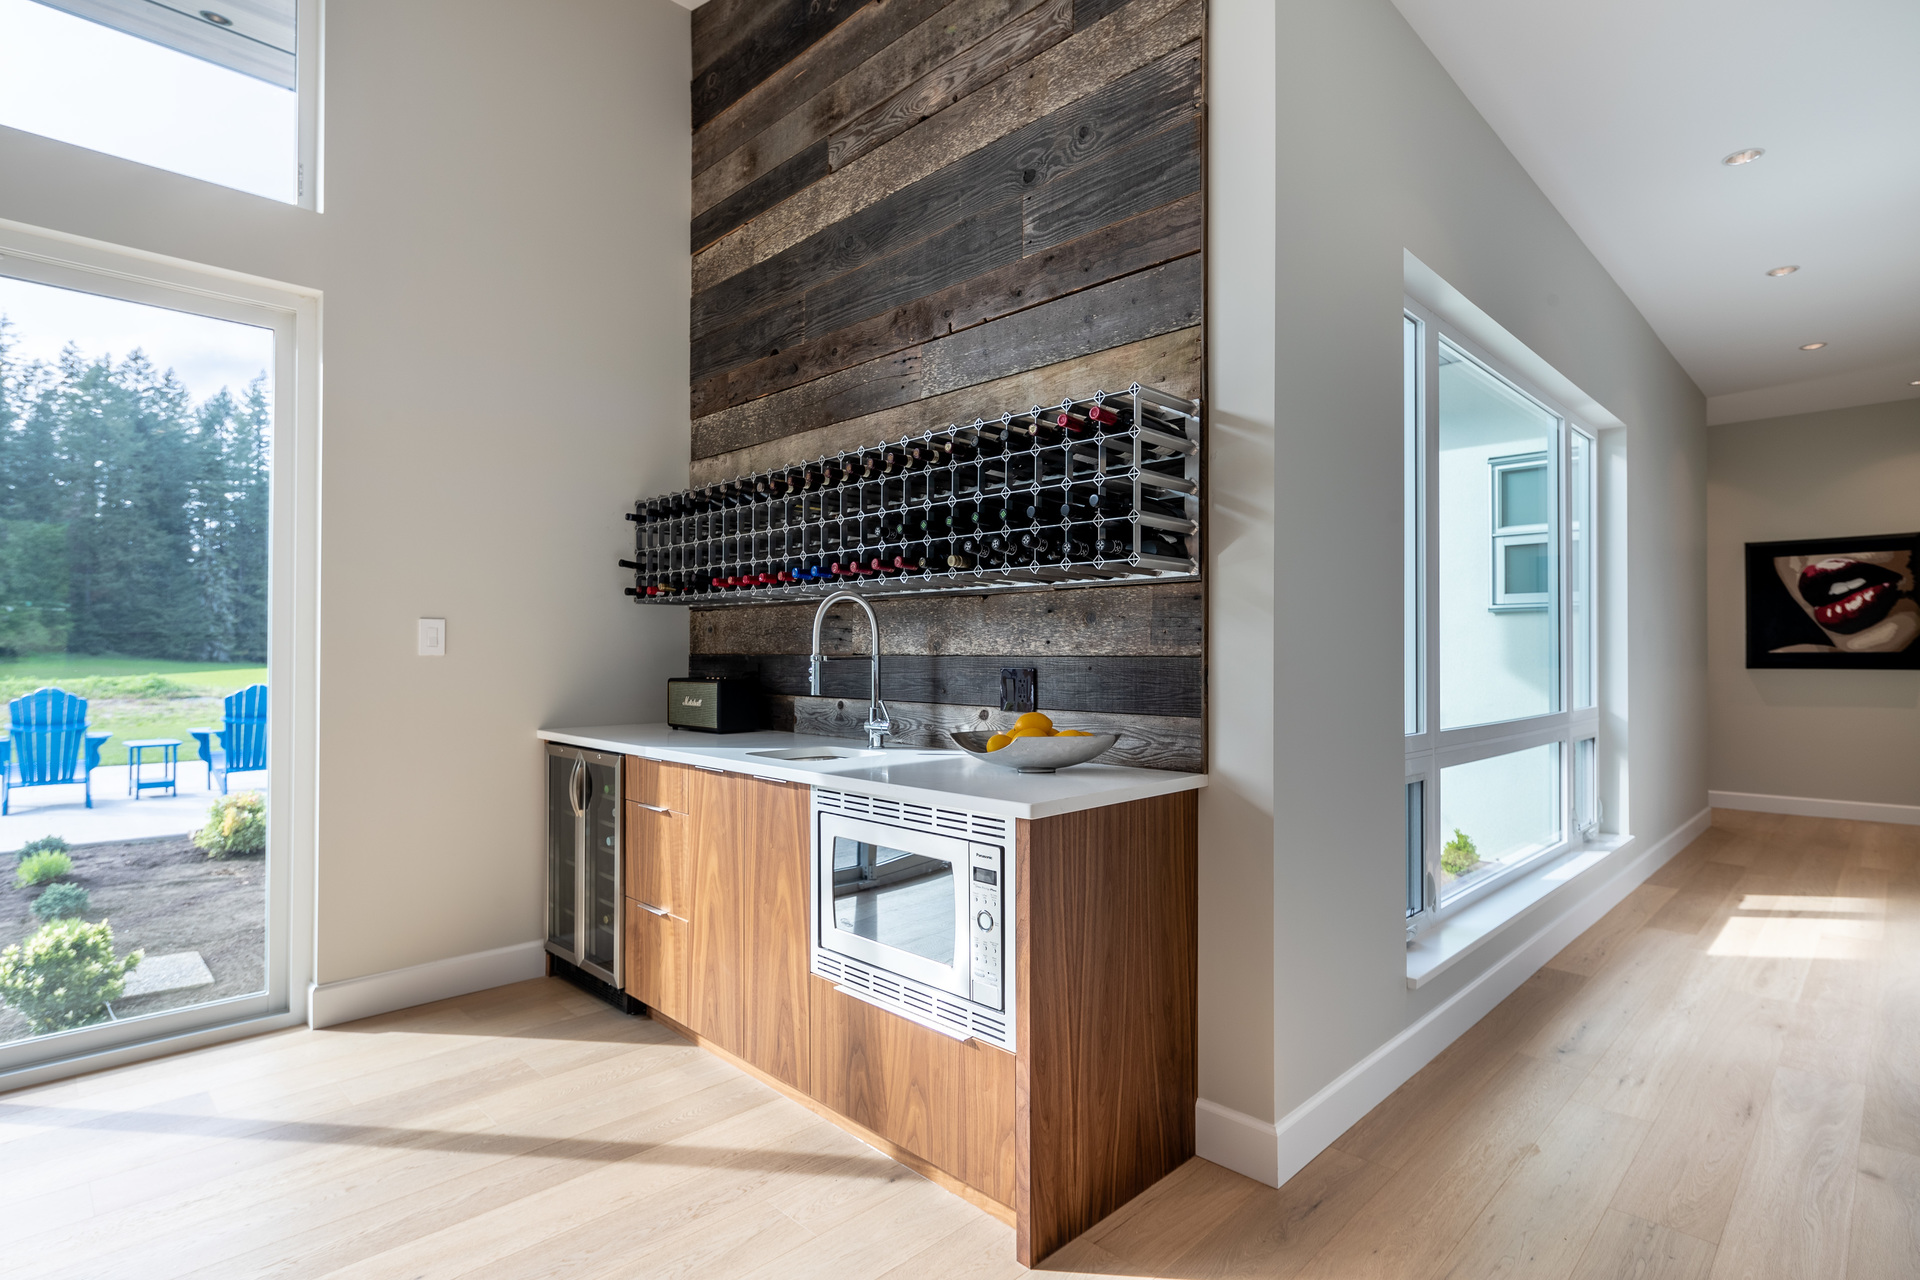 Wet Bar & Hall To Pantry/Bedrooms/Media Room at 5101 Jagtar's Way, Victoria, Vancouver Island,